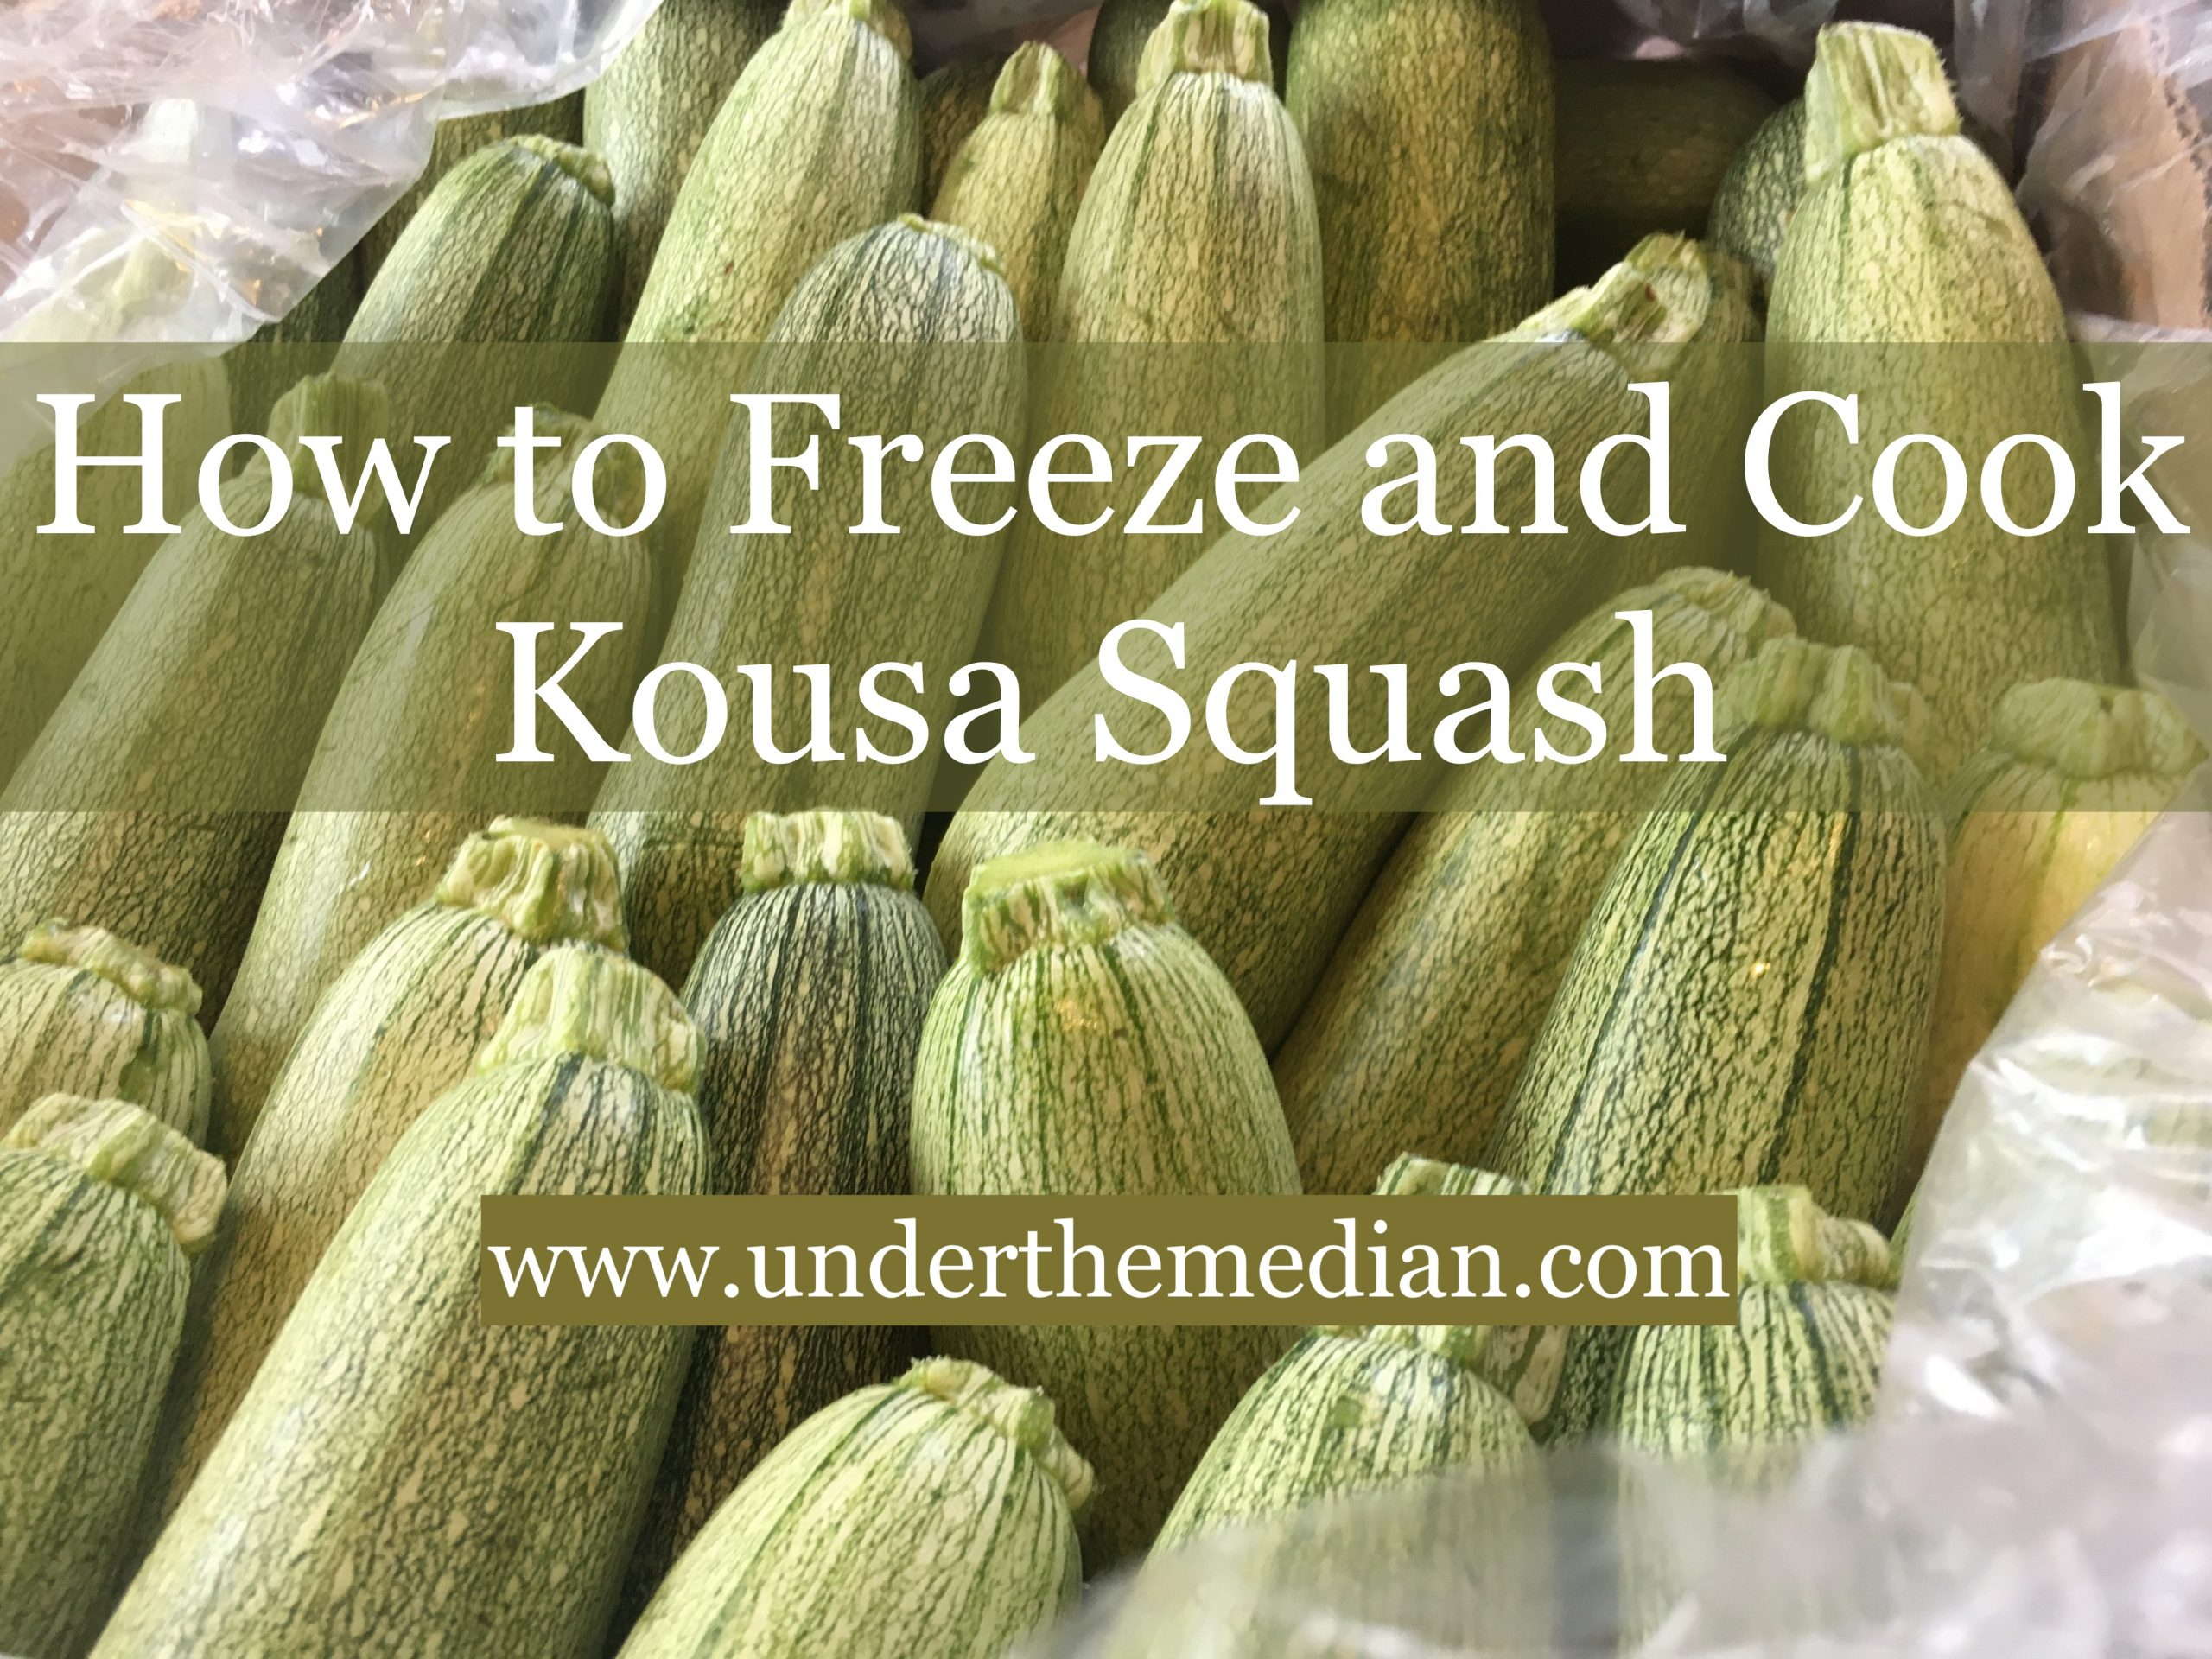 How to Freeze and Cook with Kousa Squash